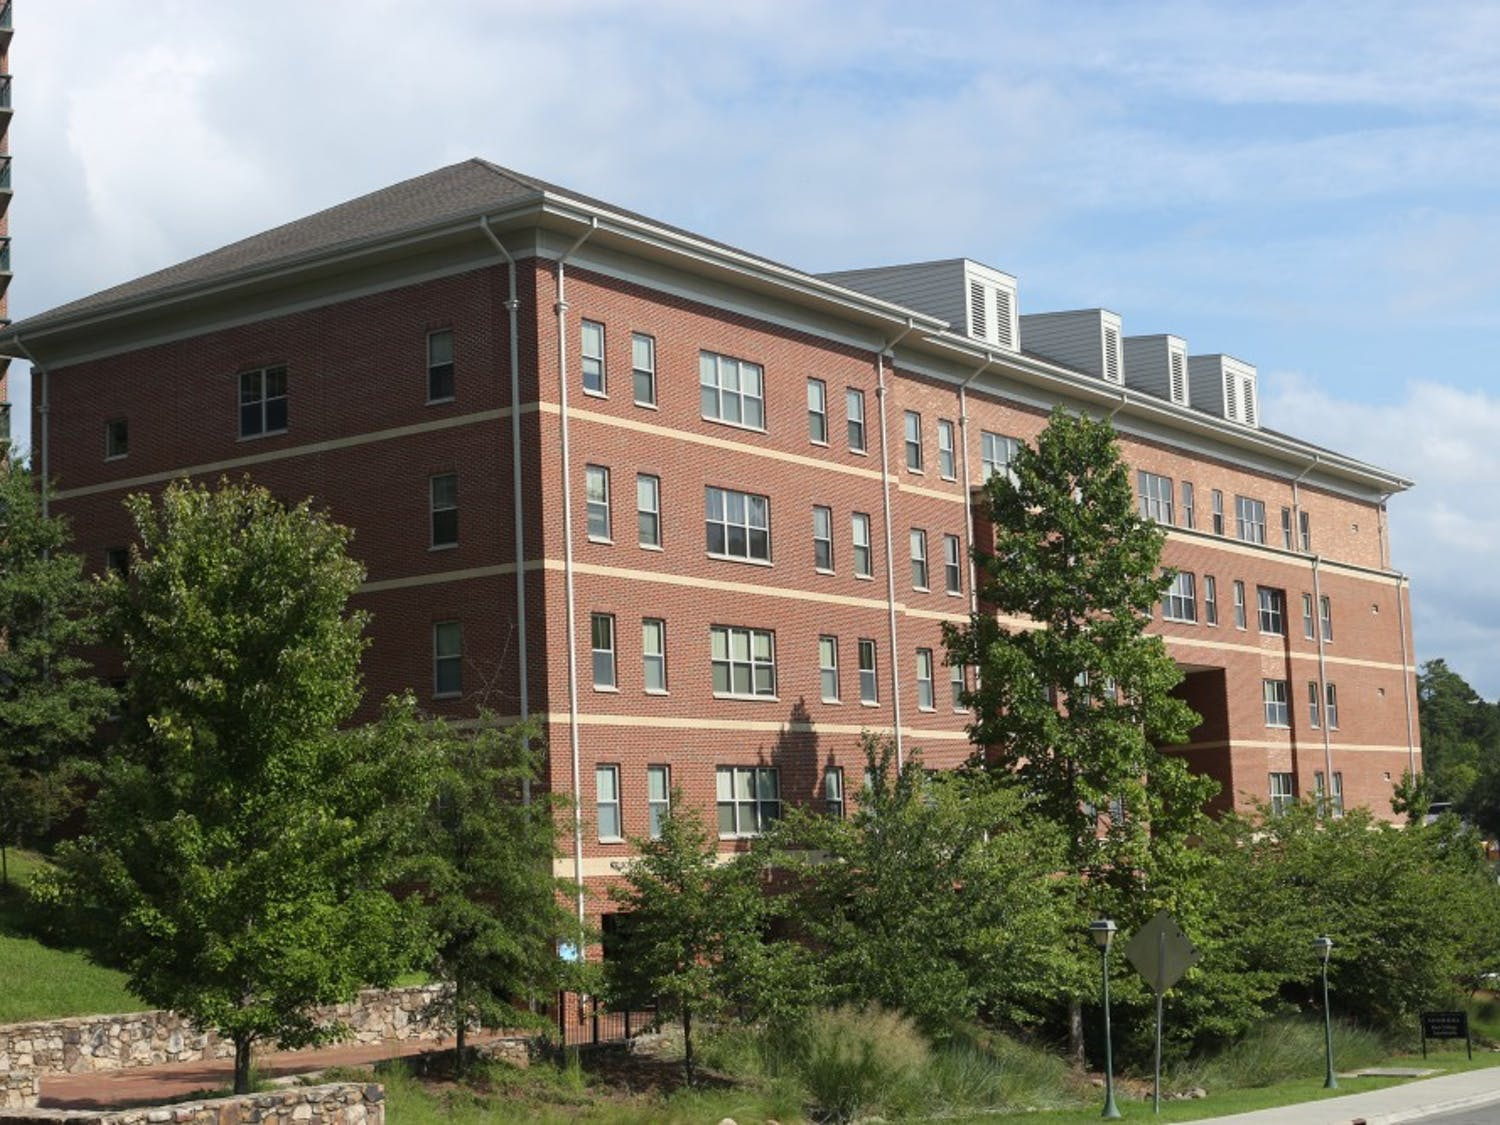 Taylor Hall, also known as Ram Village 4 is a residence hall that is located on South Campus behind the first-year dorm, Hinton James. This is one of the five buildings that makes up the Ram Village Community.